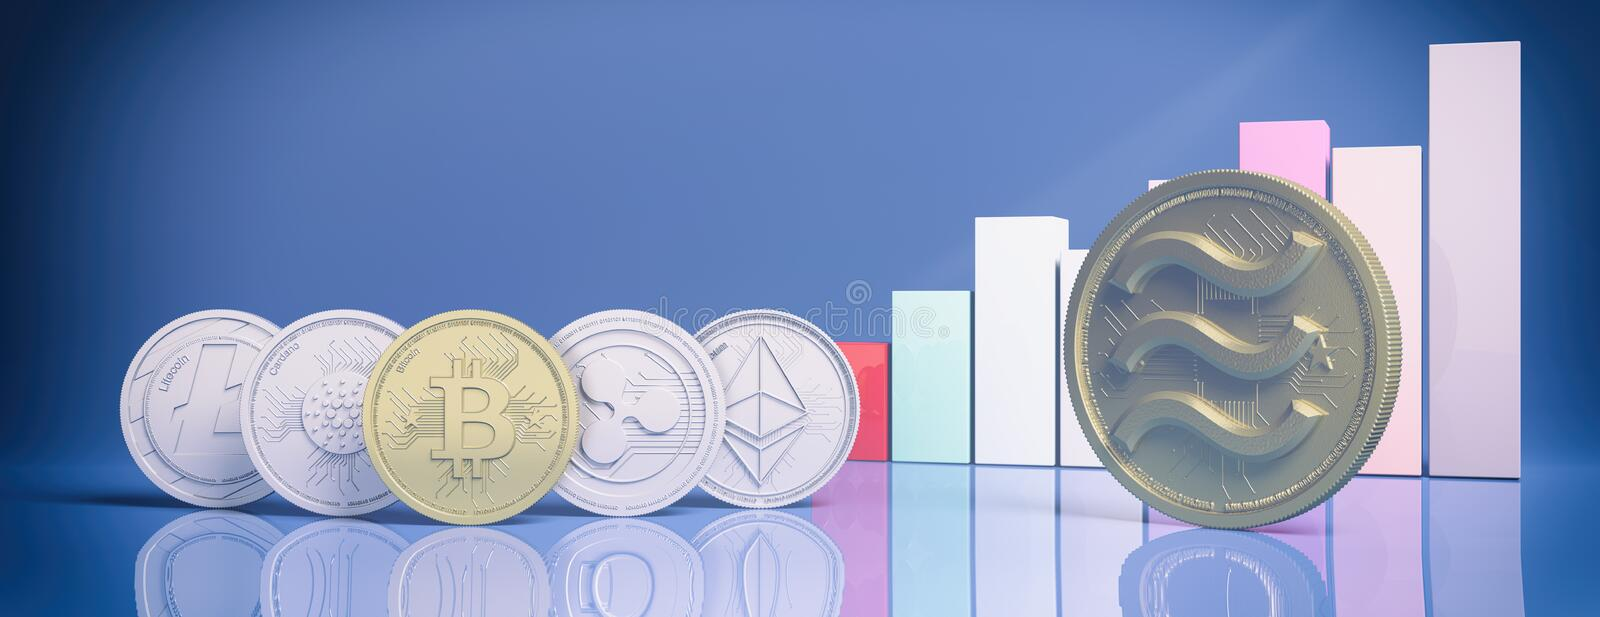 Gold Libra and cryptocurrency coins, growing bars chart, blue color background. 3d illustration vector illustration